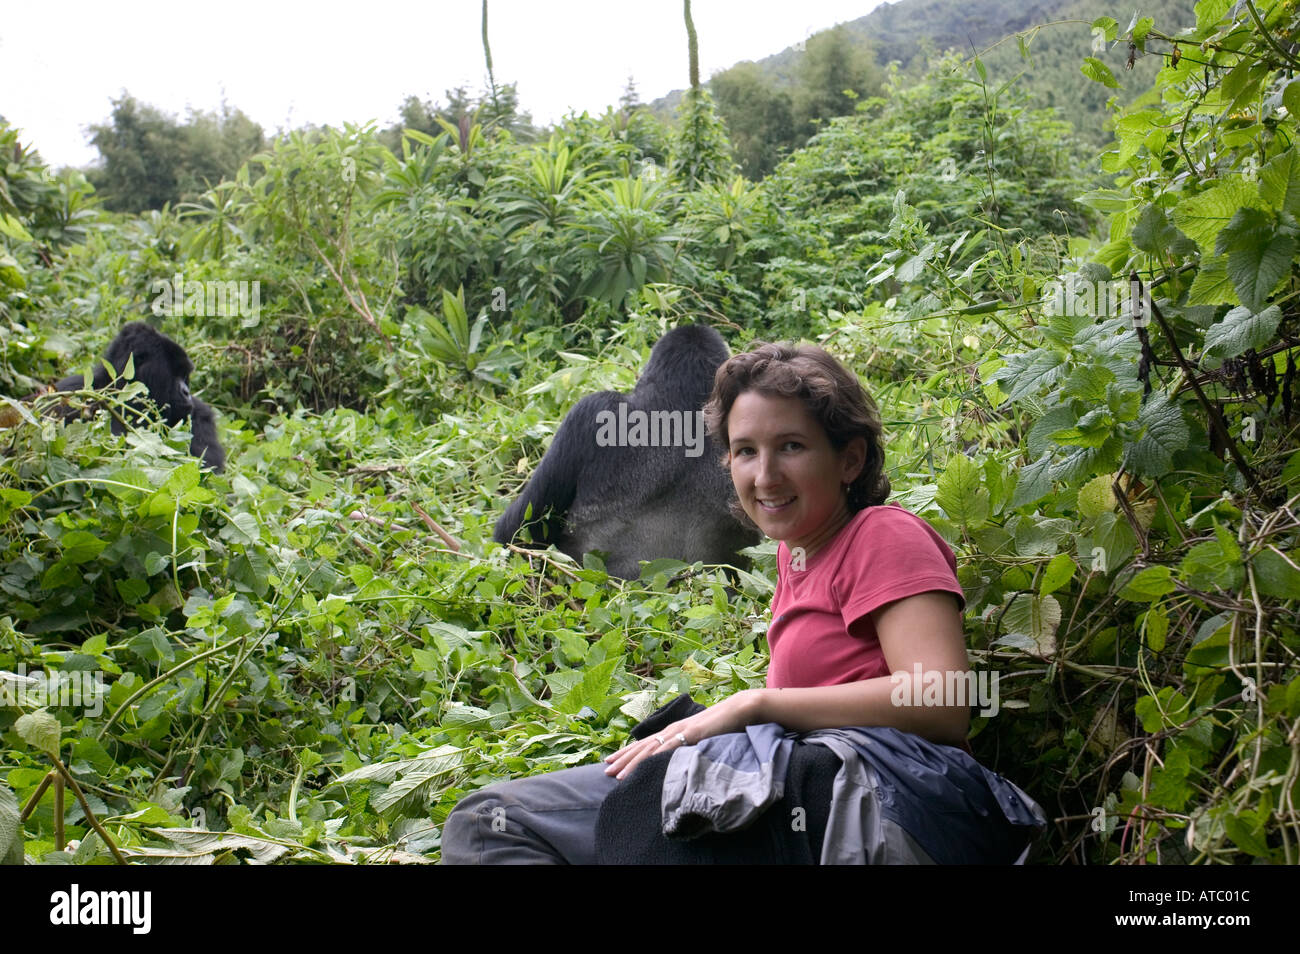 A woman holidaymaker has a close encounter with a mountain gorilla in Volcanoes National Park in Rwanda Central Africa - Stock Image